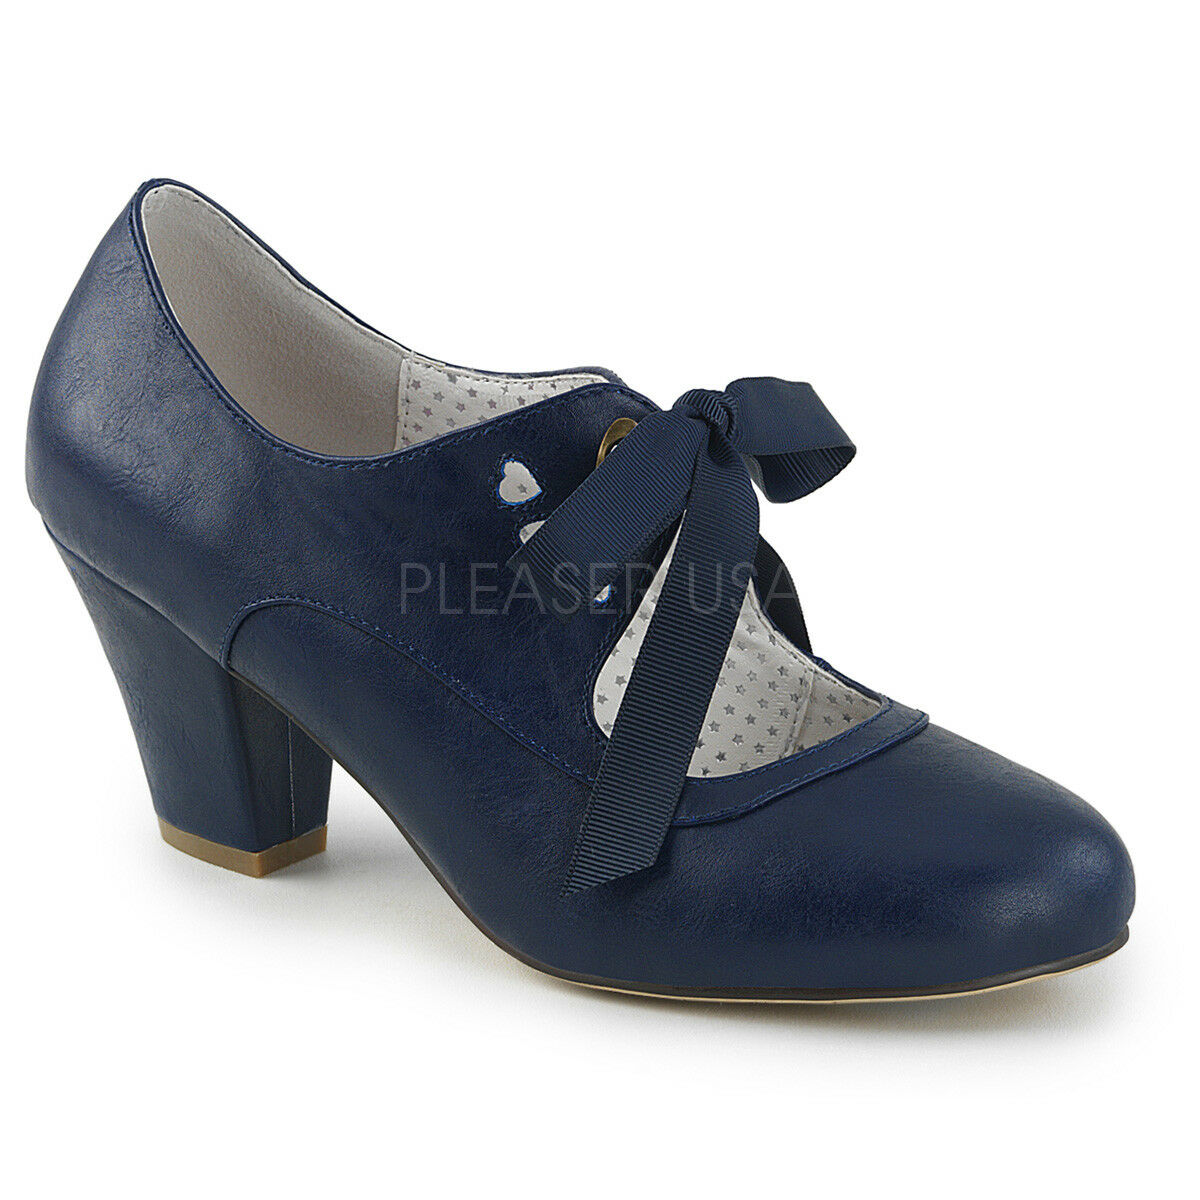 Pin Up Couture WIGGLE-32 Women's Navy bluee Faux Leather Heel shoes Mary Jane Pump